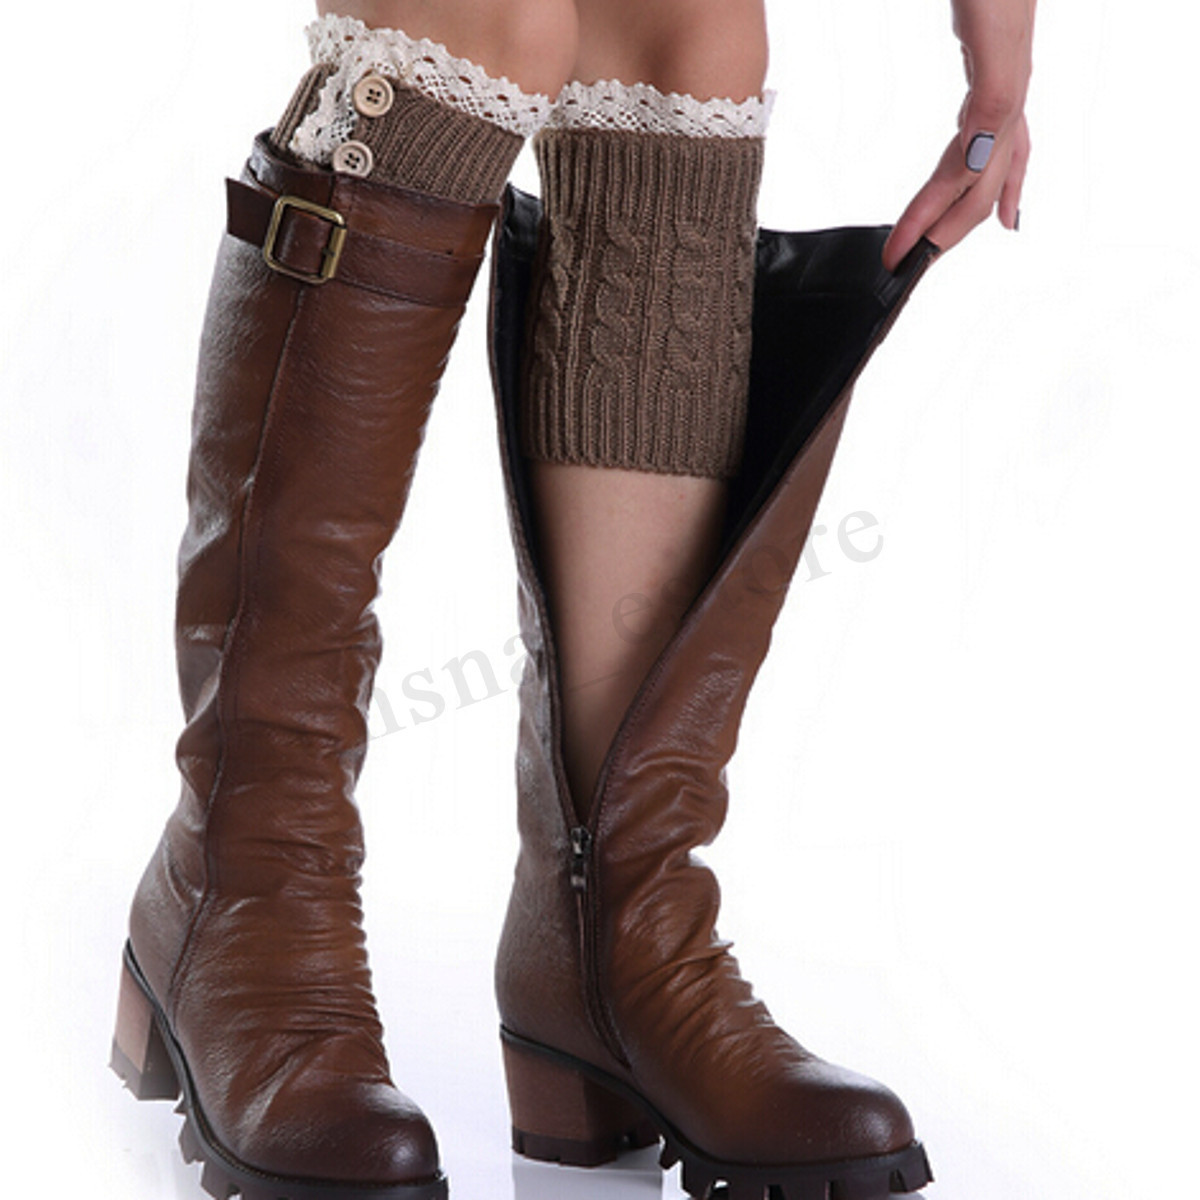 Unique Crochet Knitted Lace Trim Boot Cuffs toppers Leg Warmers Lace Boot Cuffs Of Awesome 50 Pictures Lace Boot Cuffs